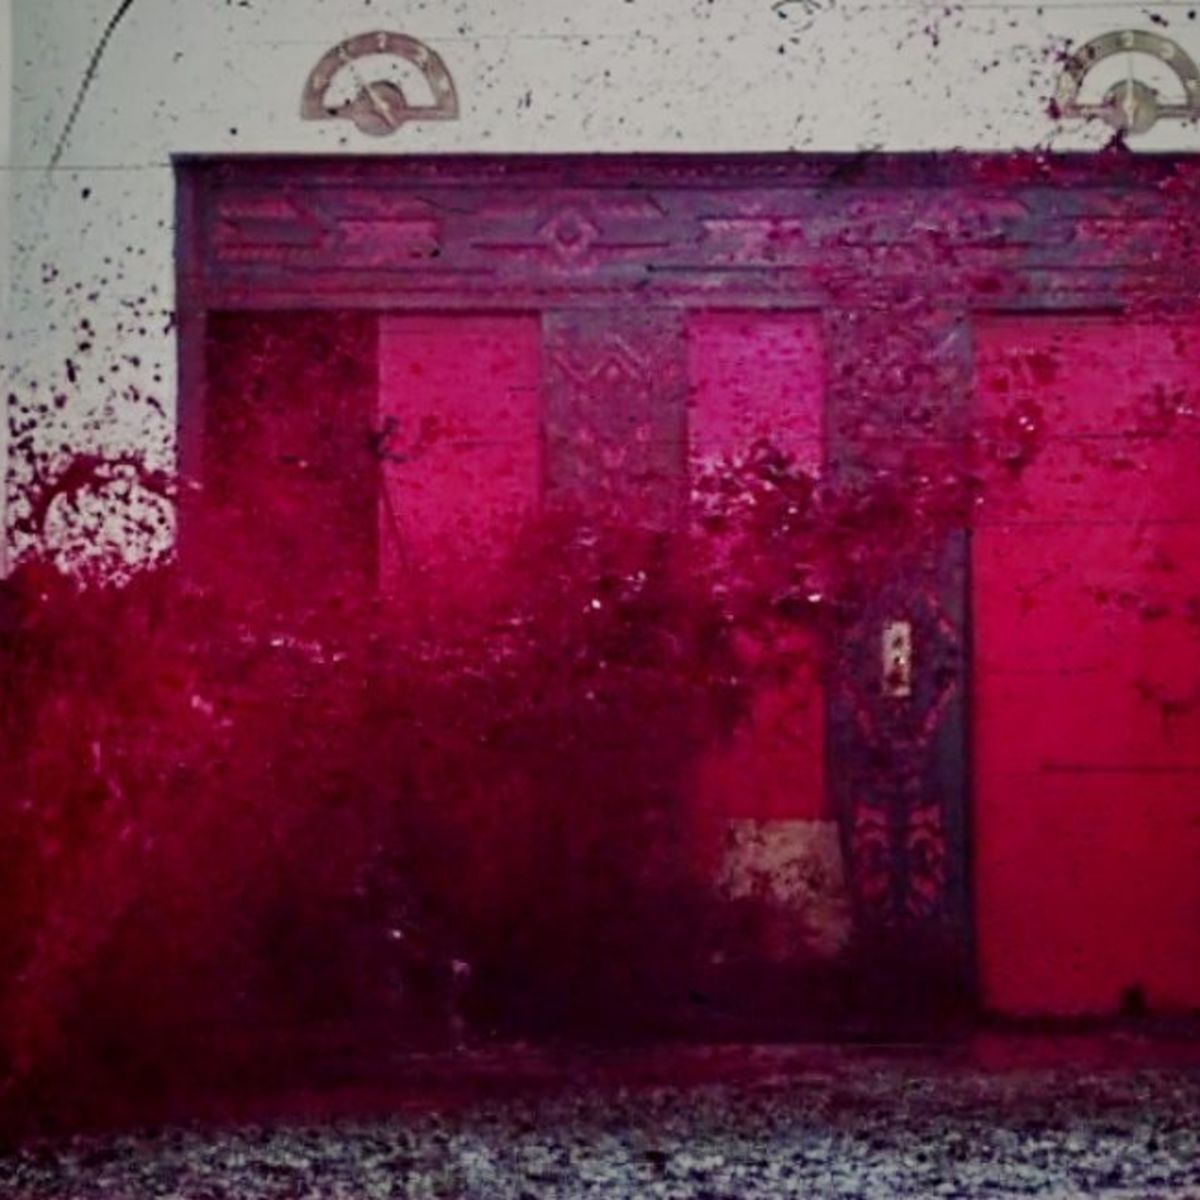 elevator-blood-flood-scene-the-shining1.jpg